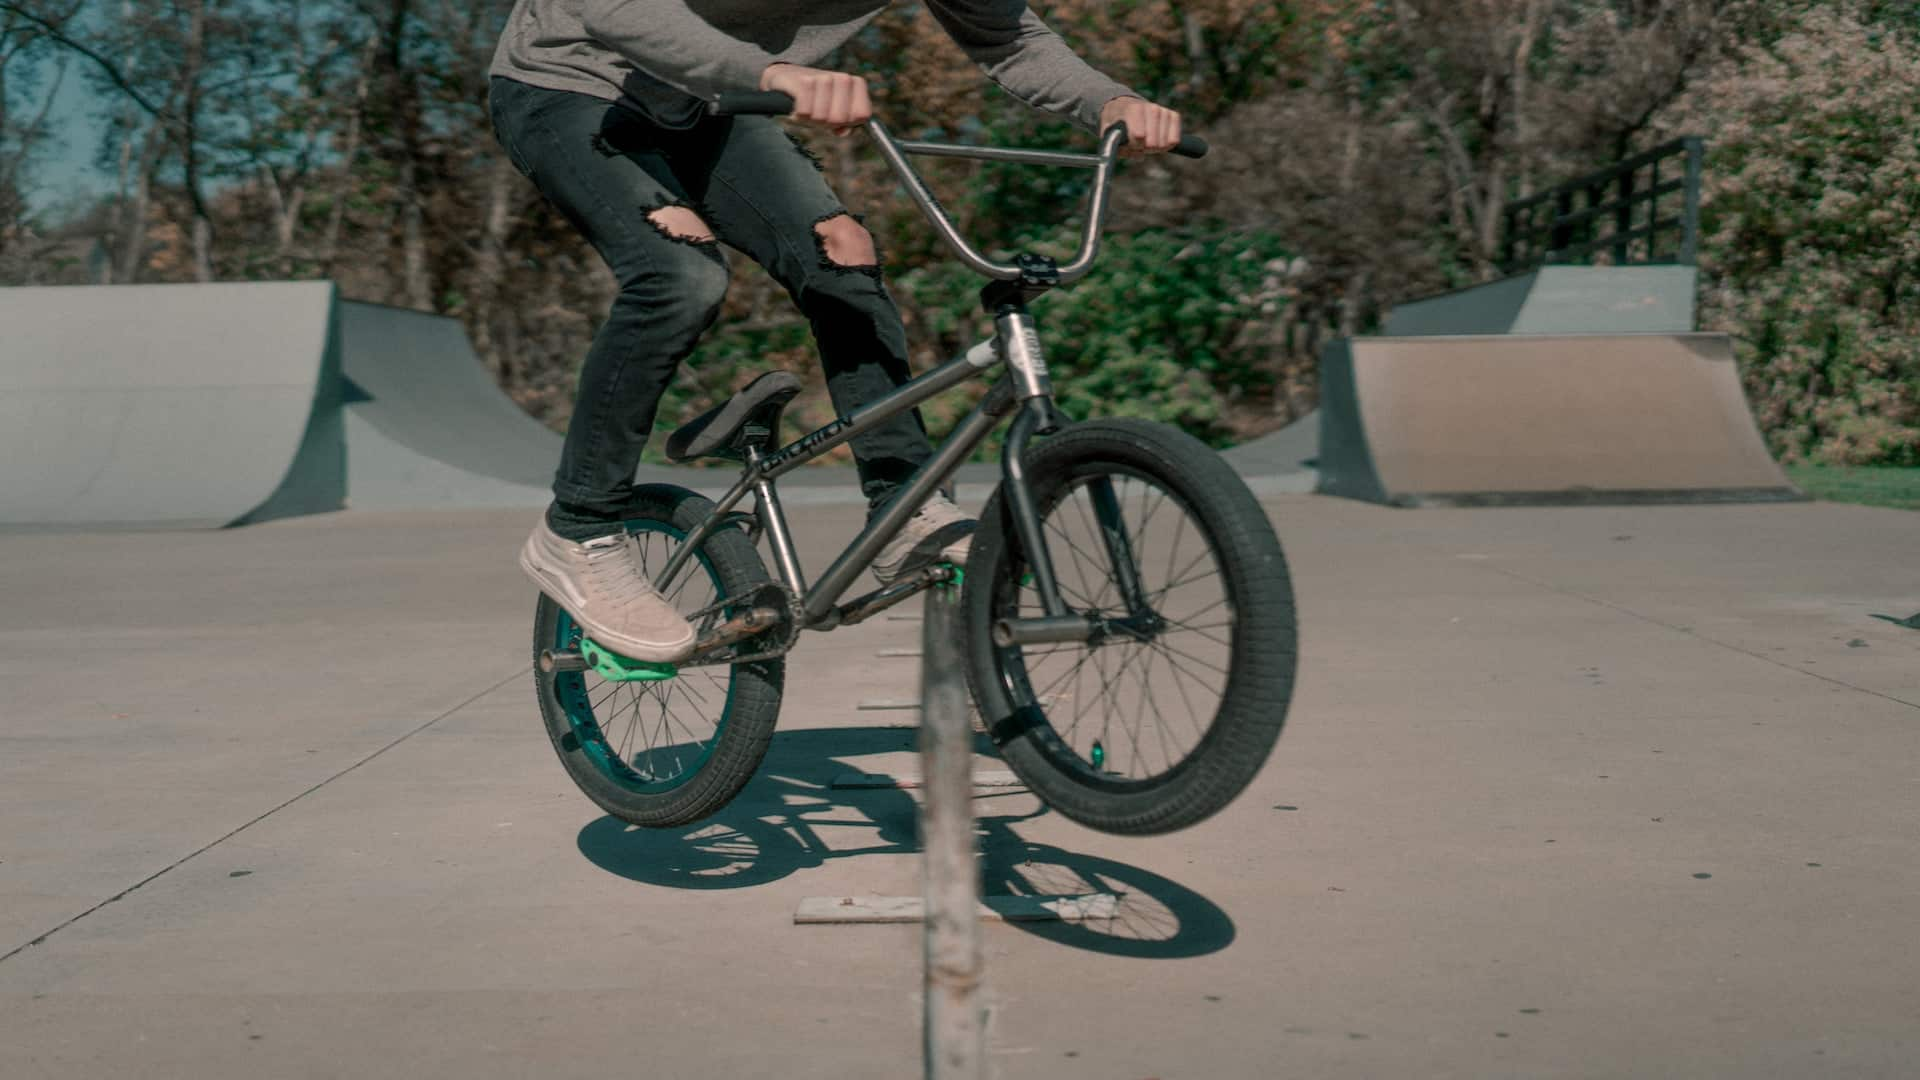 Best BMX Bike 2020: Shopping Guide & Review